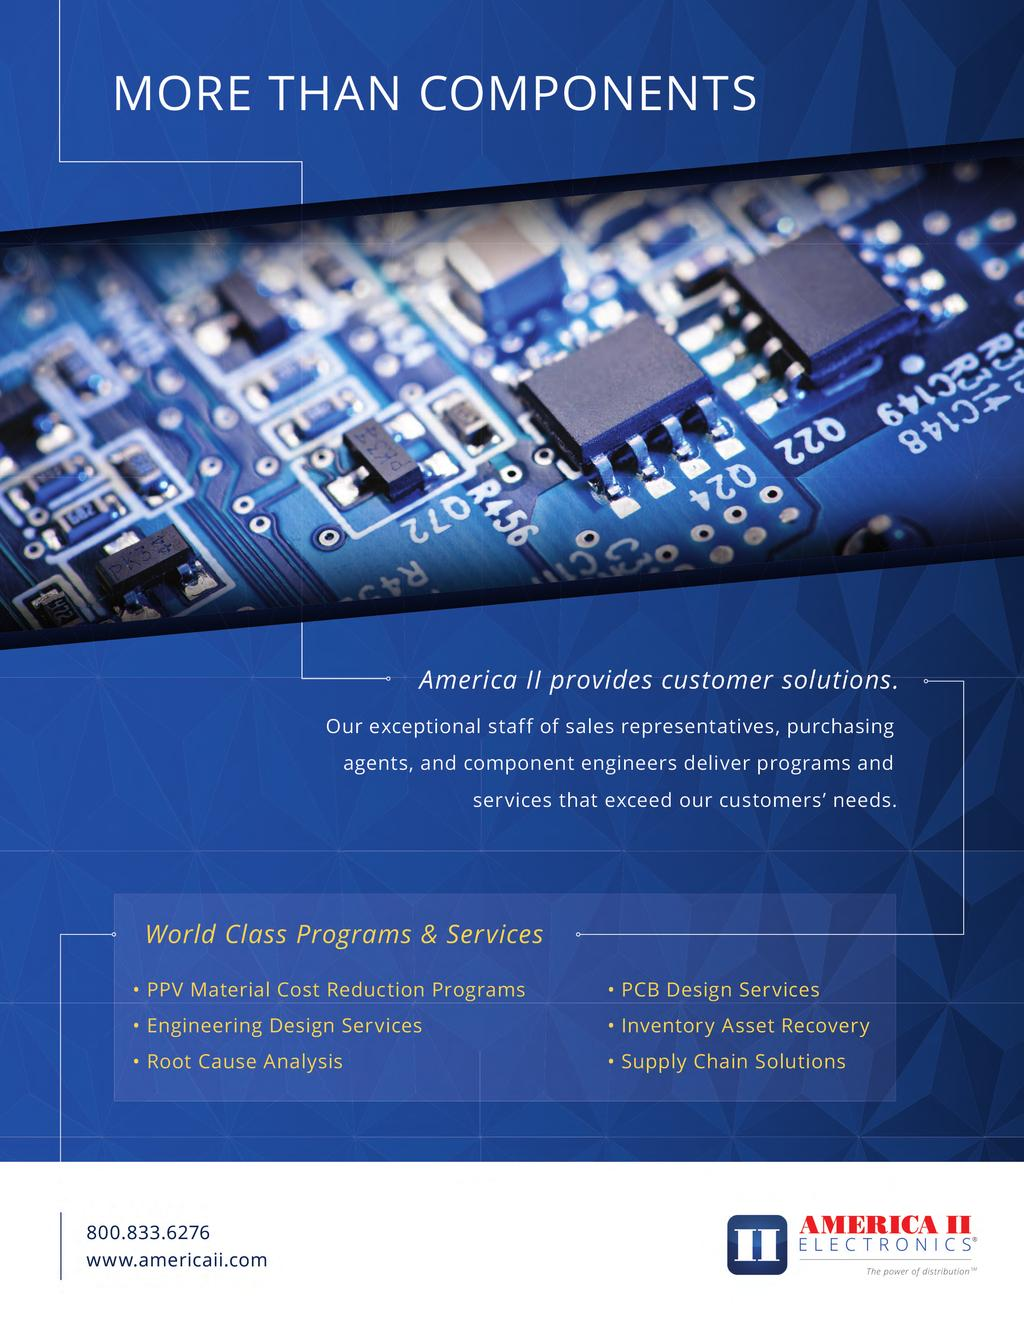 Koa Speer Electronics Your Passive Component Partner Sourcing September 2016 An Mmg Publishing Title Pdf 9